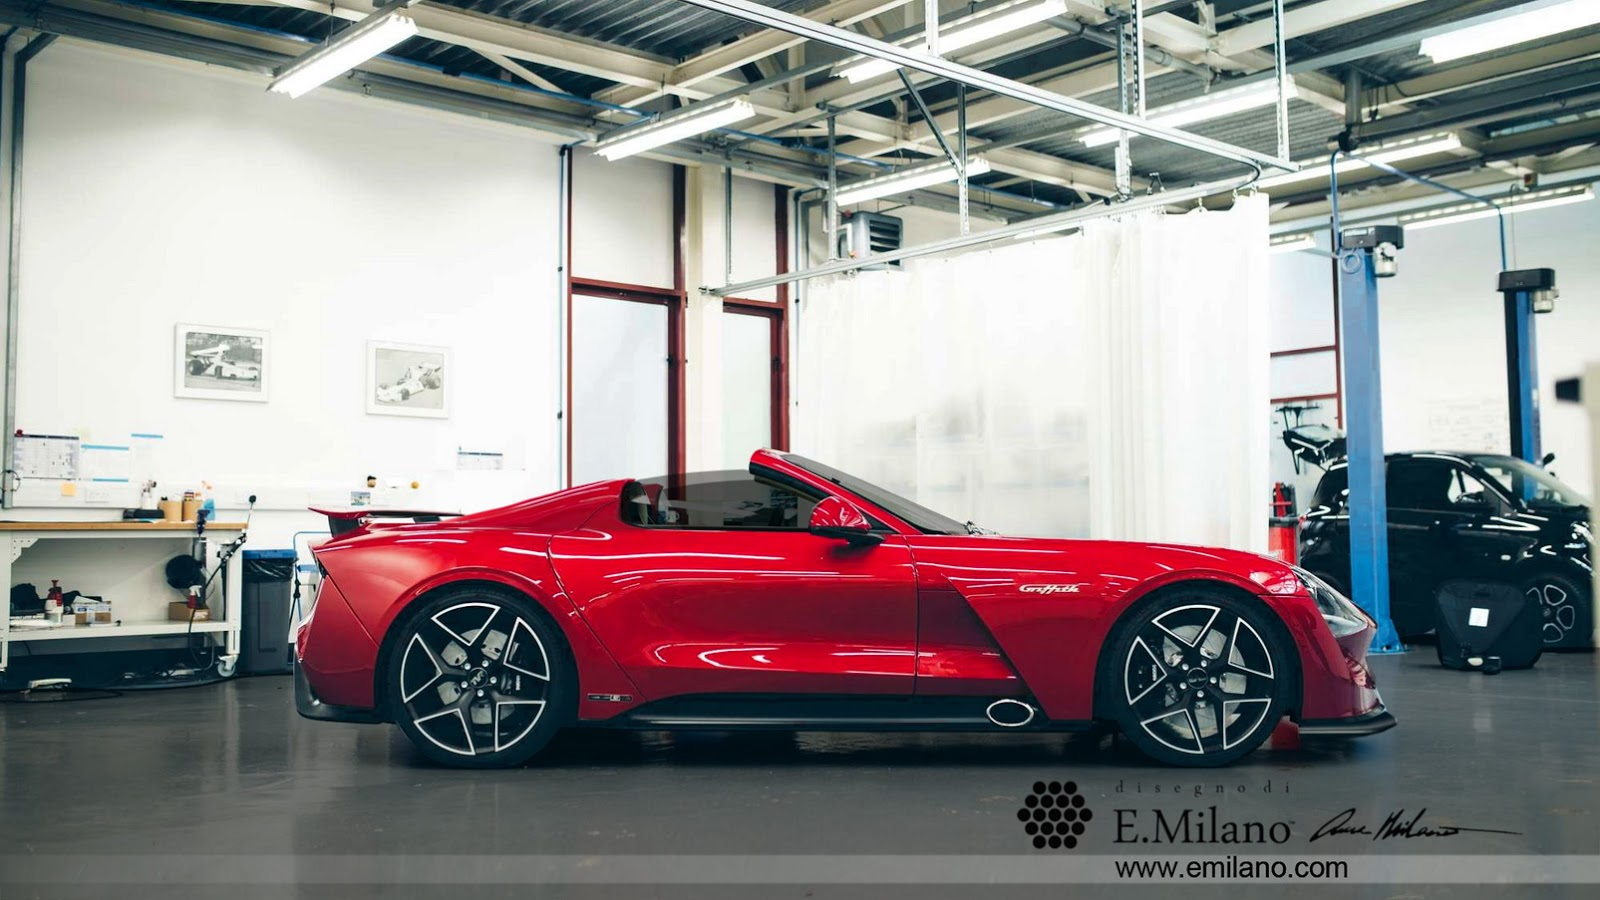 2018 Tvr Griffith Convertible Rendering Looks Tantalizing